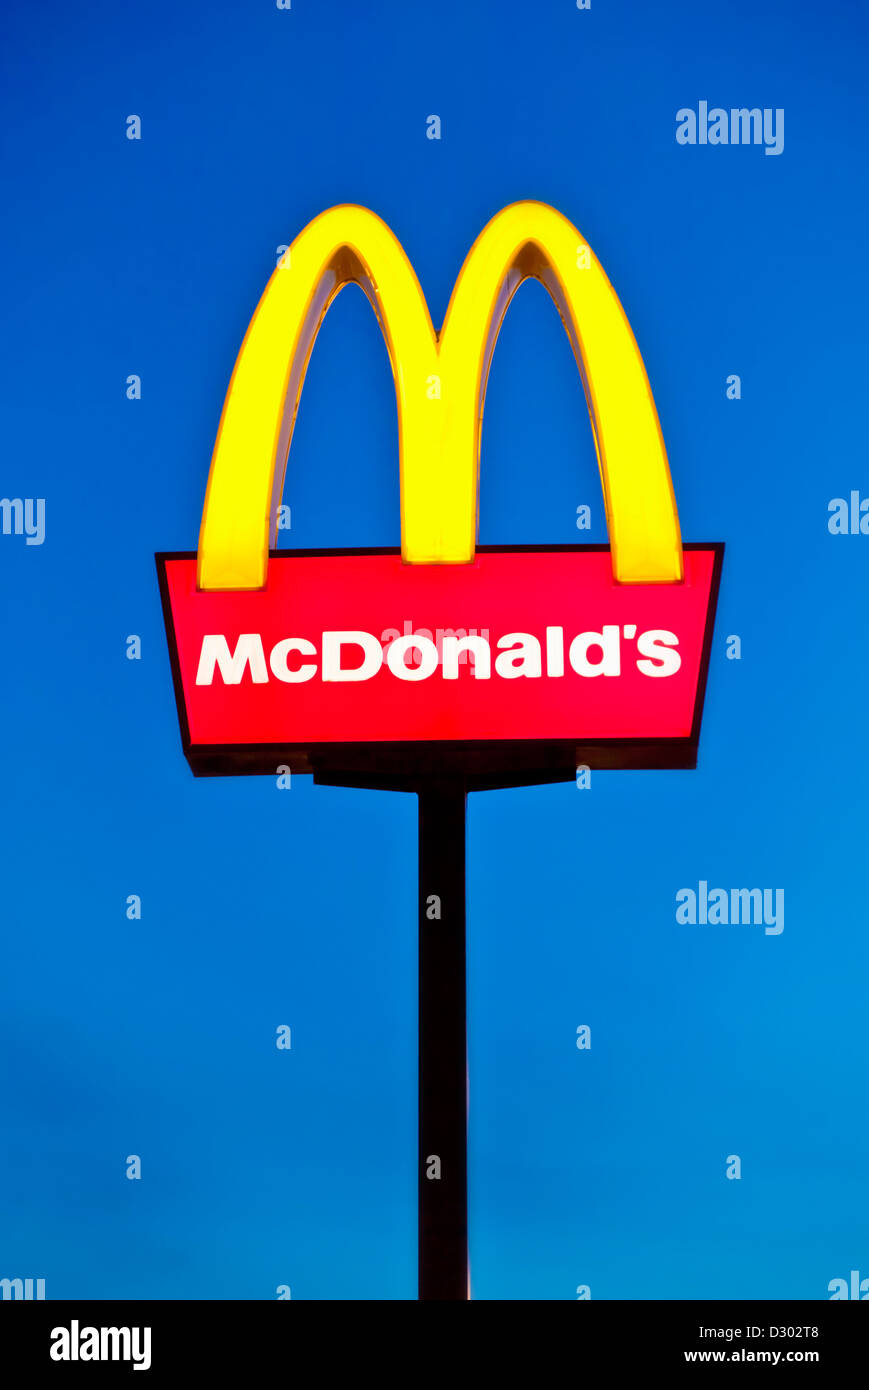 Mcdonald's Logo arches sign against a clear blue sky UK - Stock Image